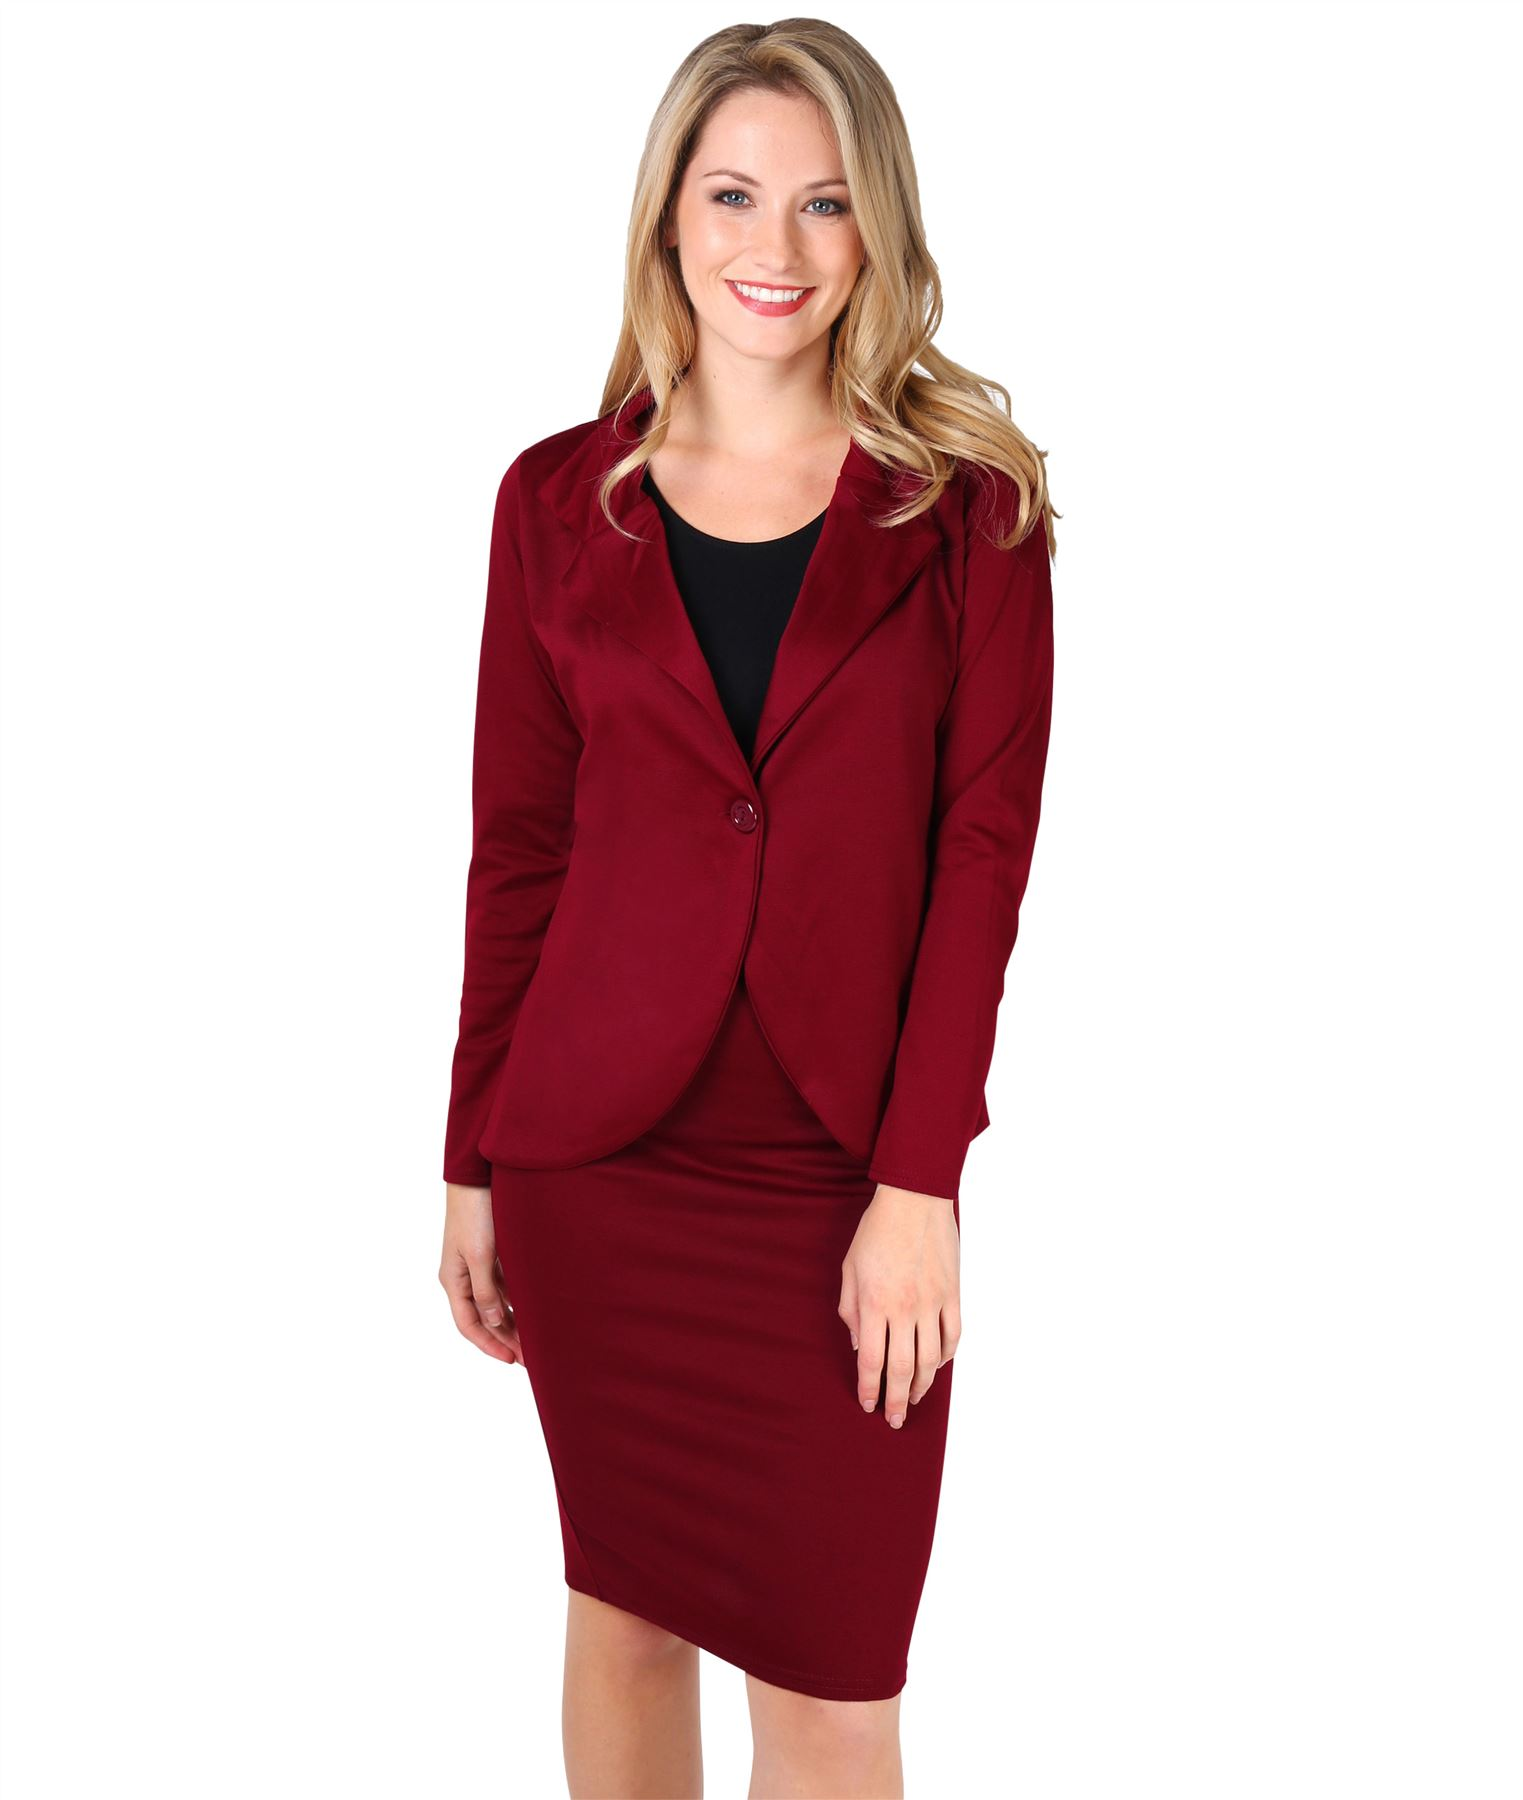 Womens-Ladies-Pencil-Skirt-Midi-Knee-Long-High-Waist-Work-Office-Business-Smart thumbnail 12